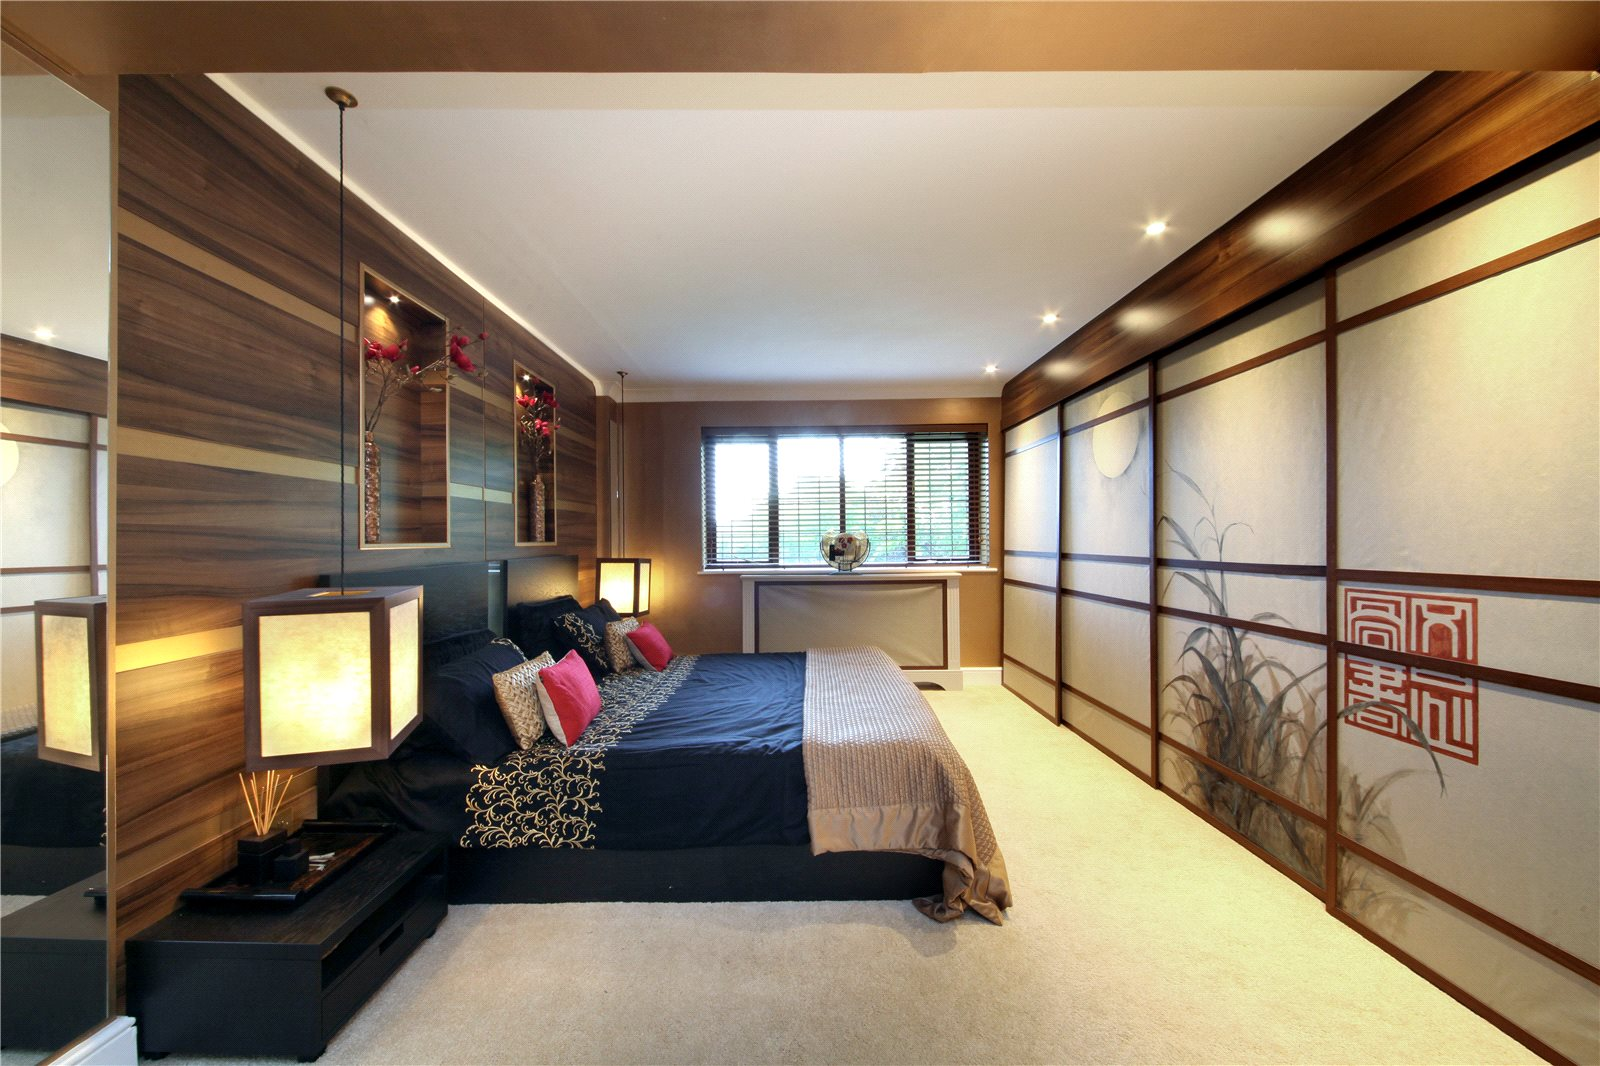 Nationcrest,Master Bedroom